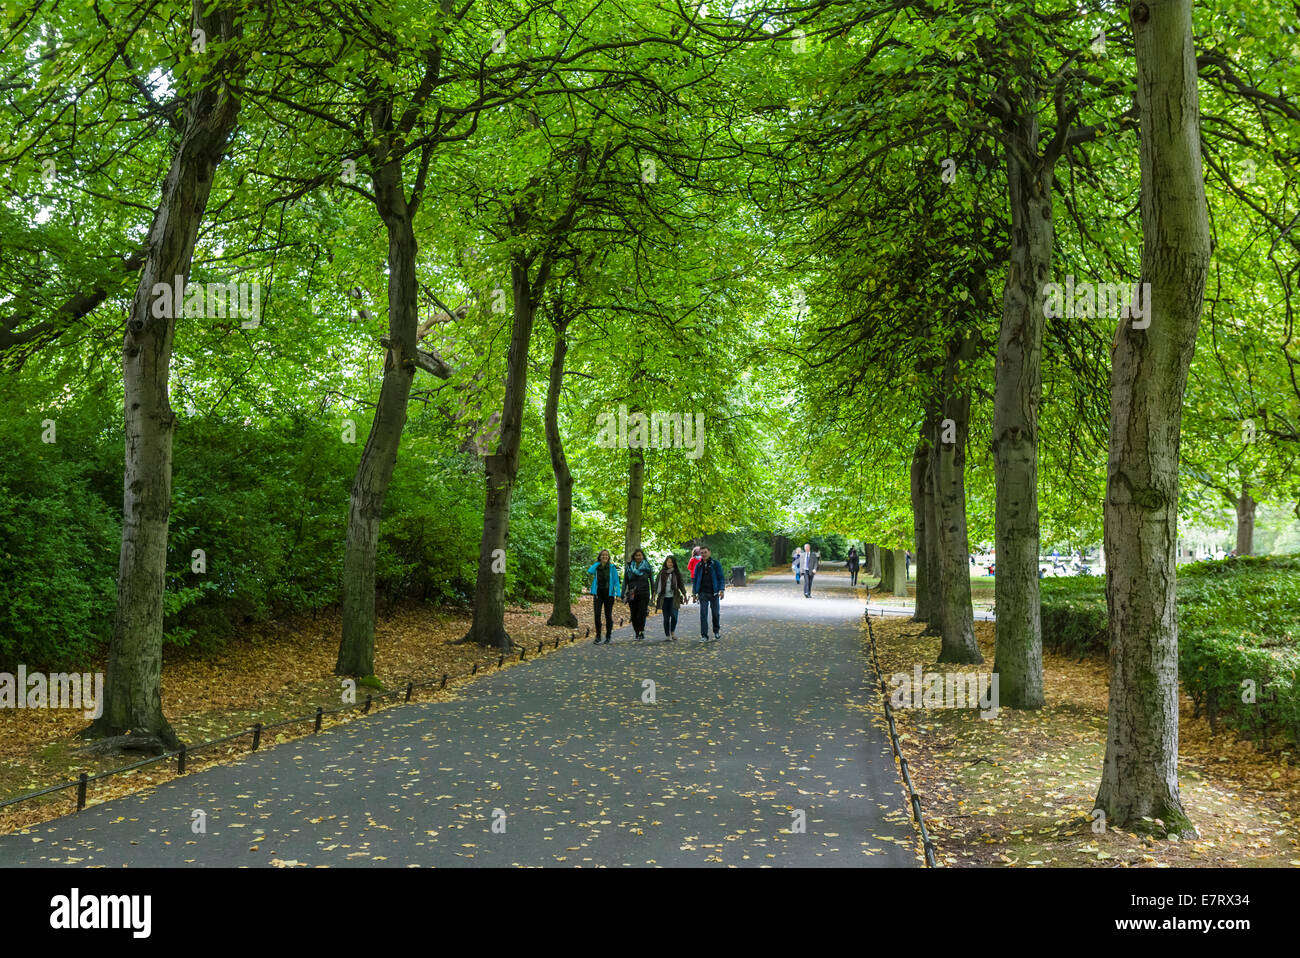 St Stephen's Green public park in the city centre, Dublin City, Republic of Ireland - Stock Image